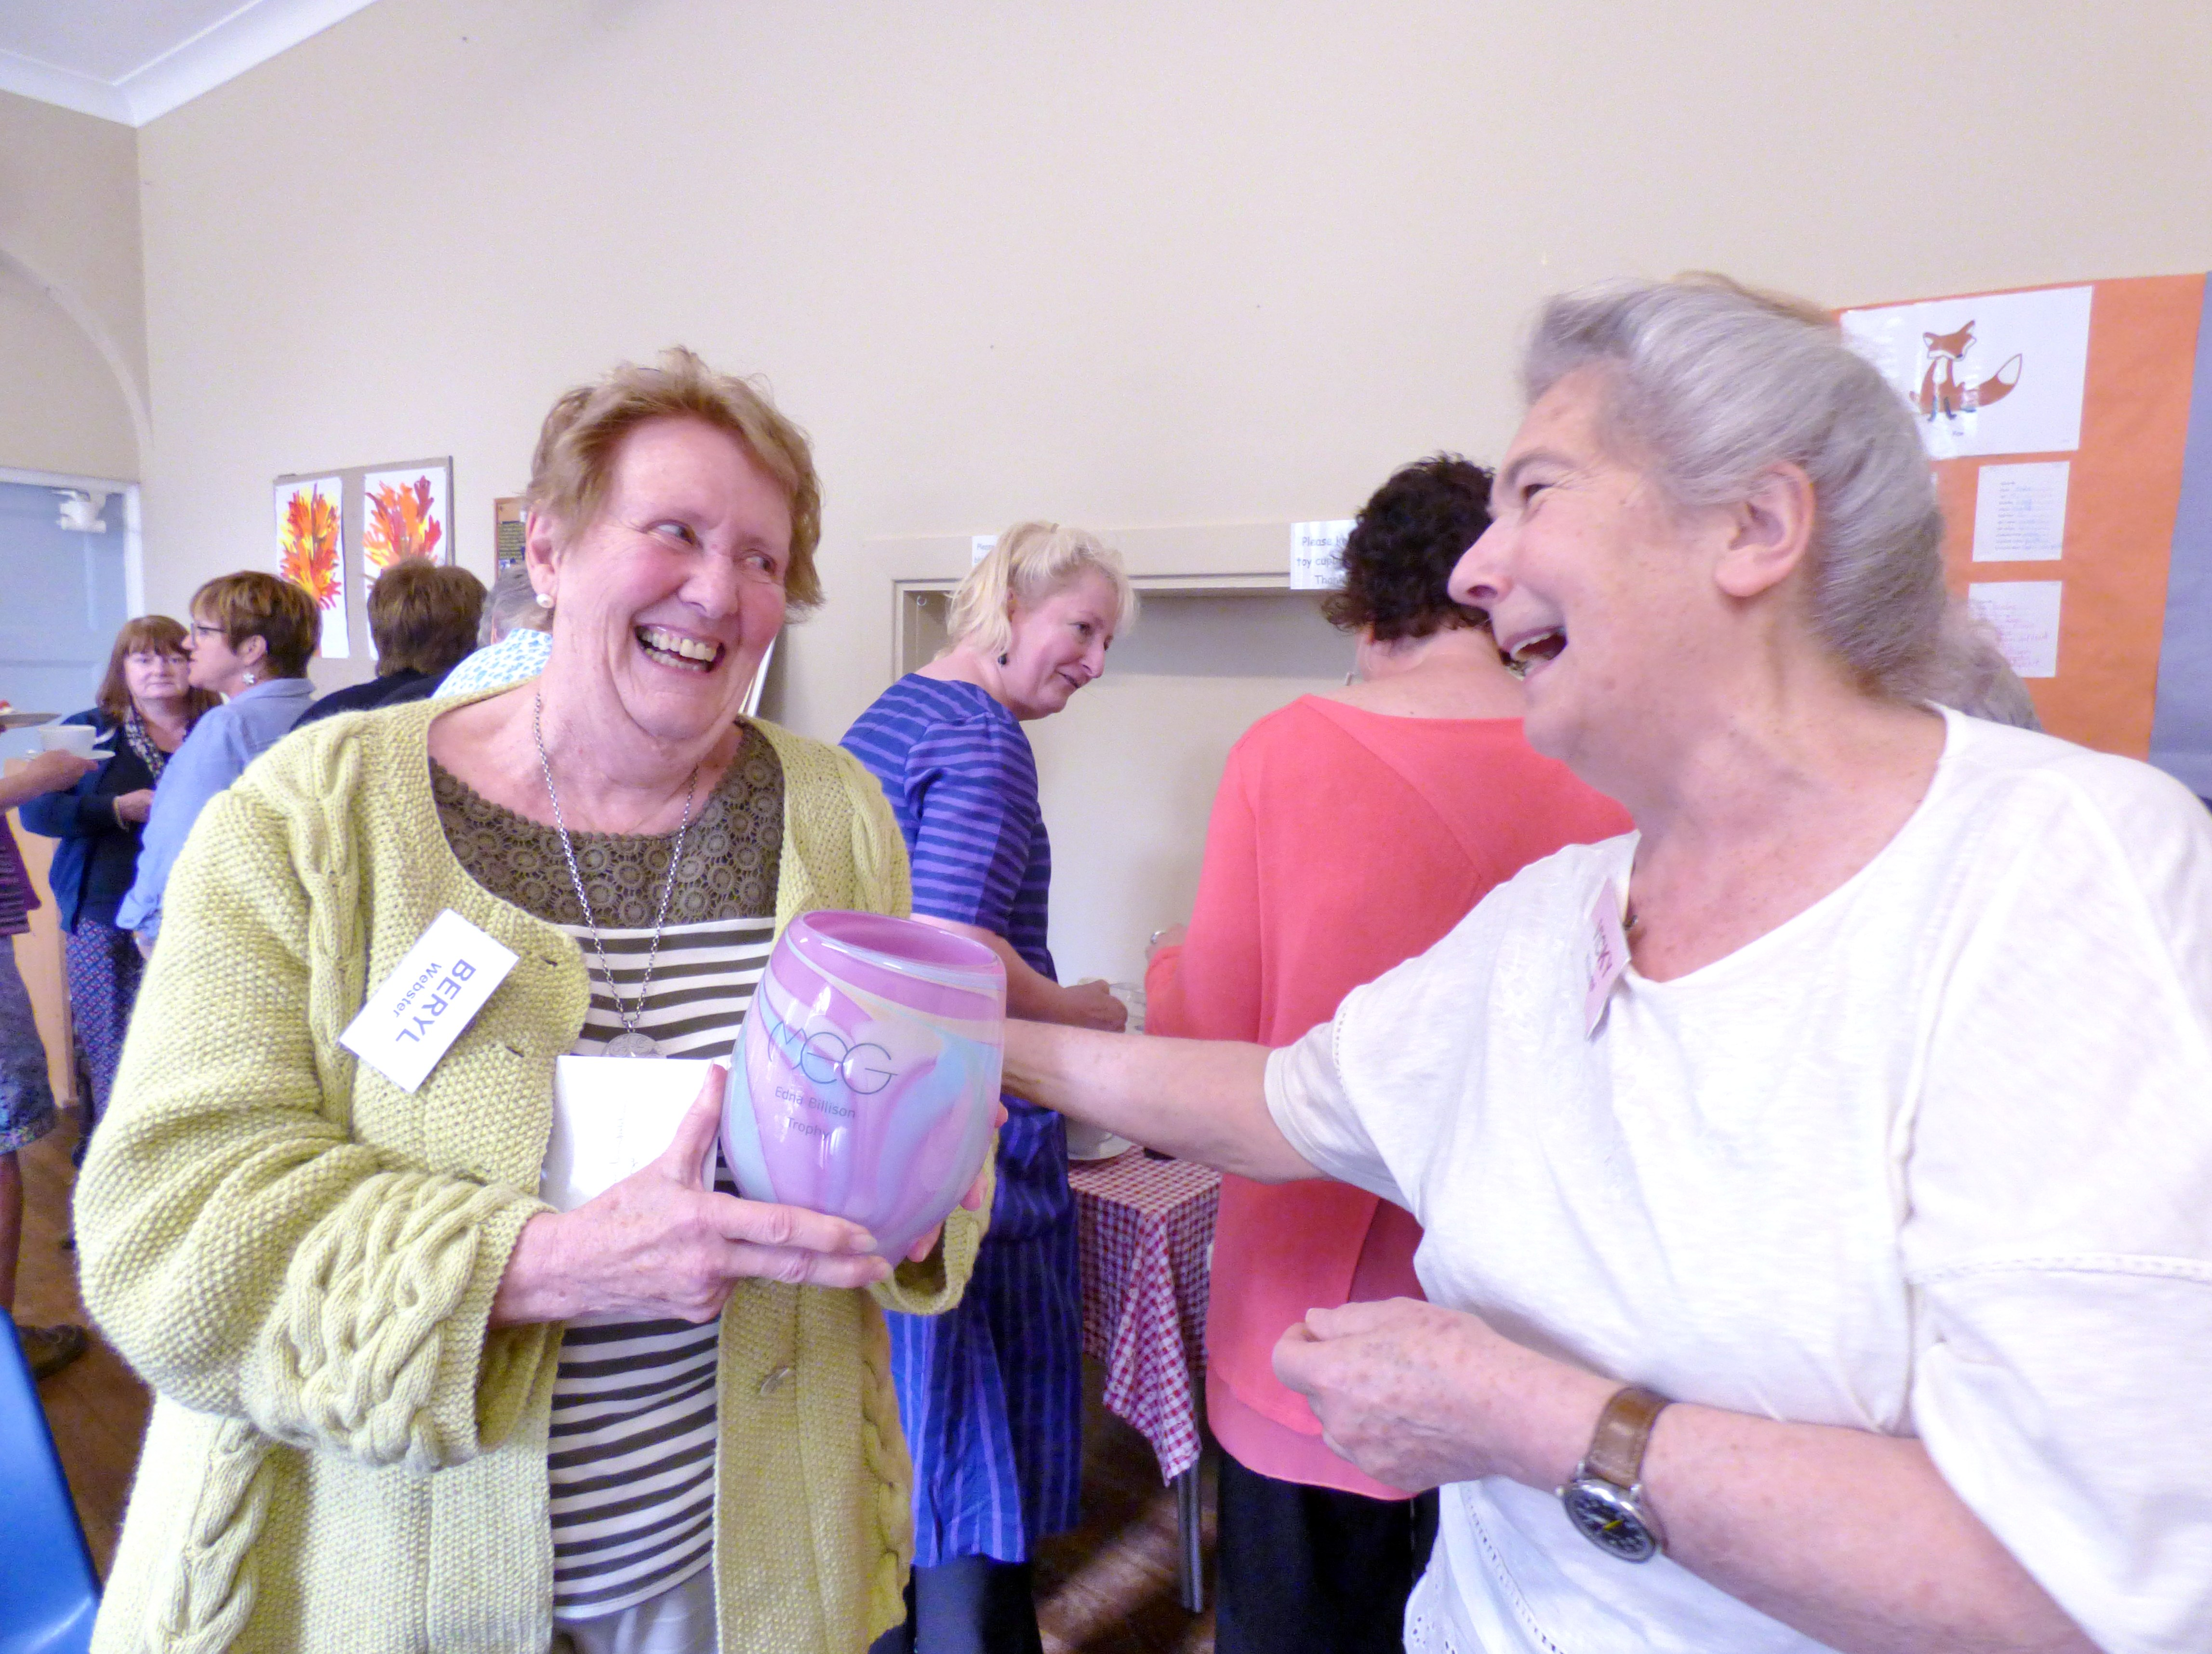 Beryl Webster, winner of 2018 Colour Competition presented with the Edna Billison Glass Trophy by MEG Chair Vicky Williams